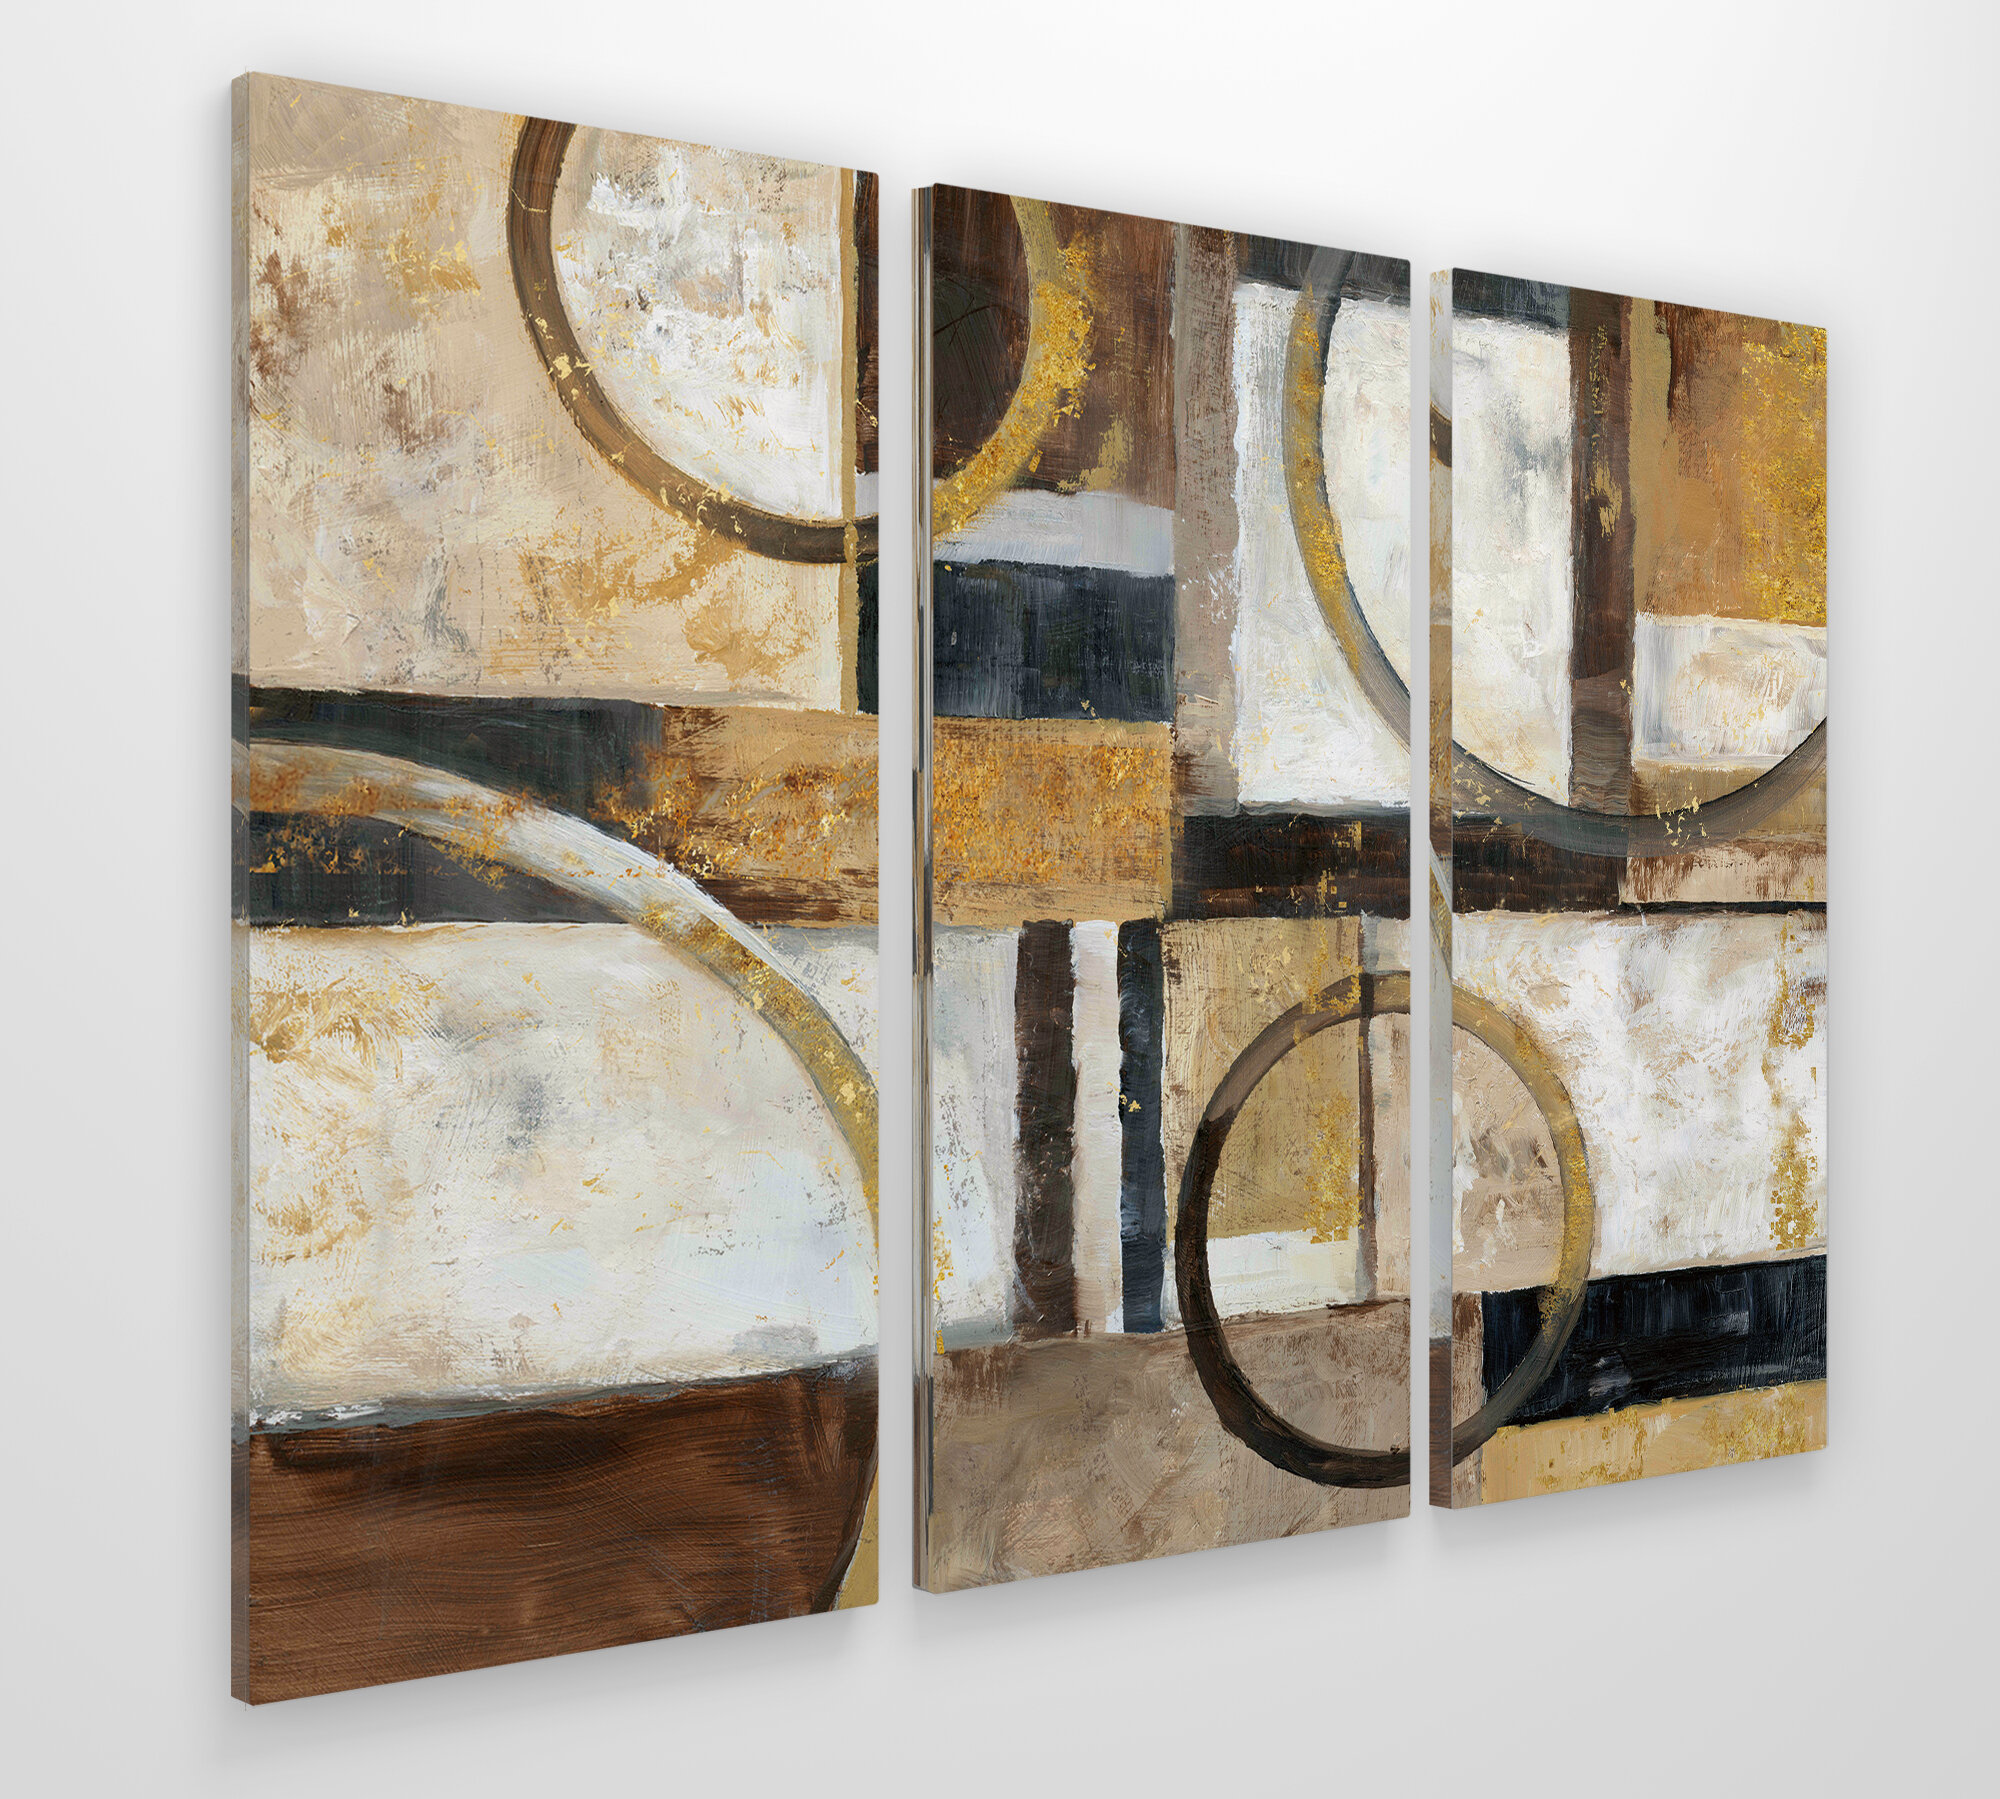 George Oliver Interplay Acrylic Painting Print Multi Piece Image On Gallery Wrapped Canvas Reviews Wayfair